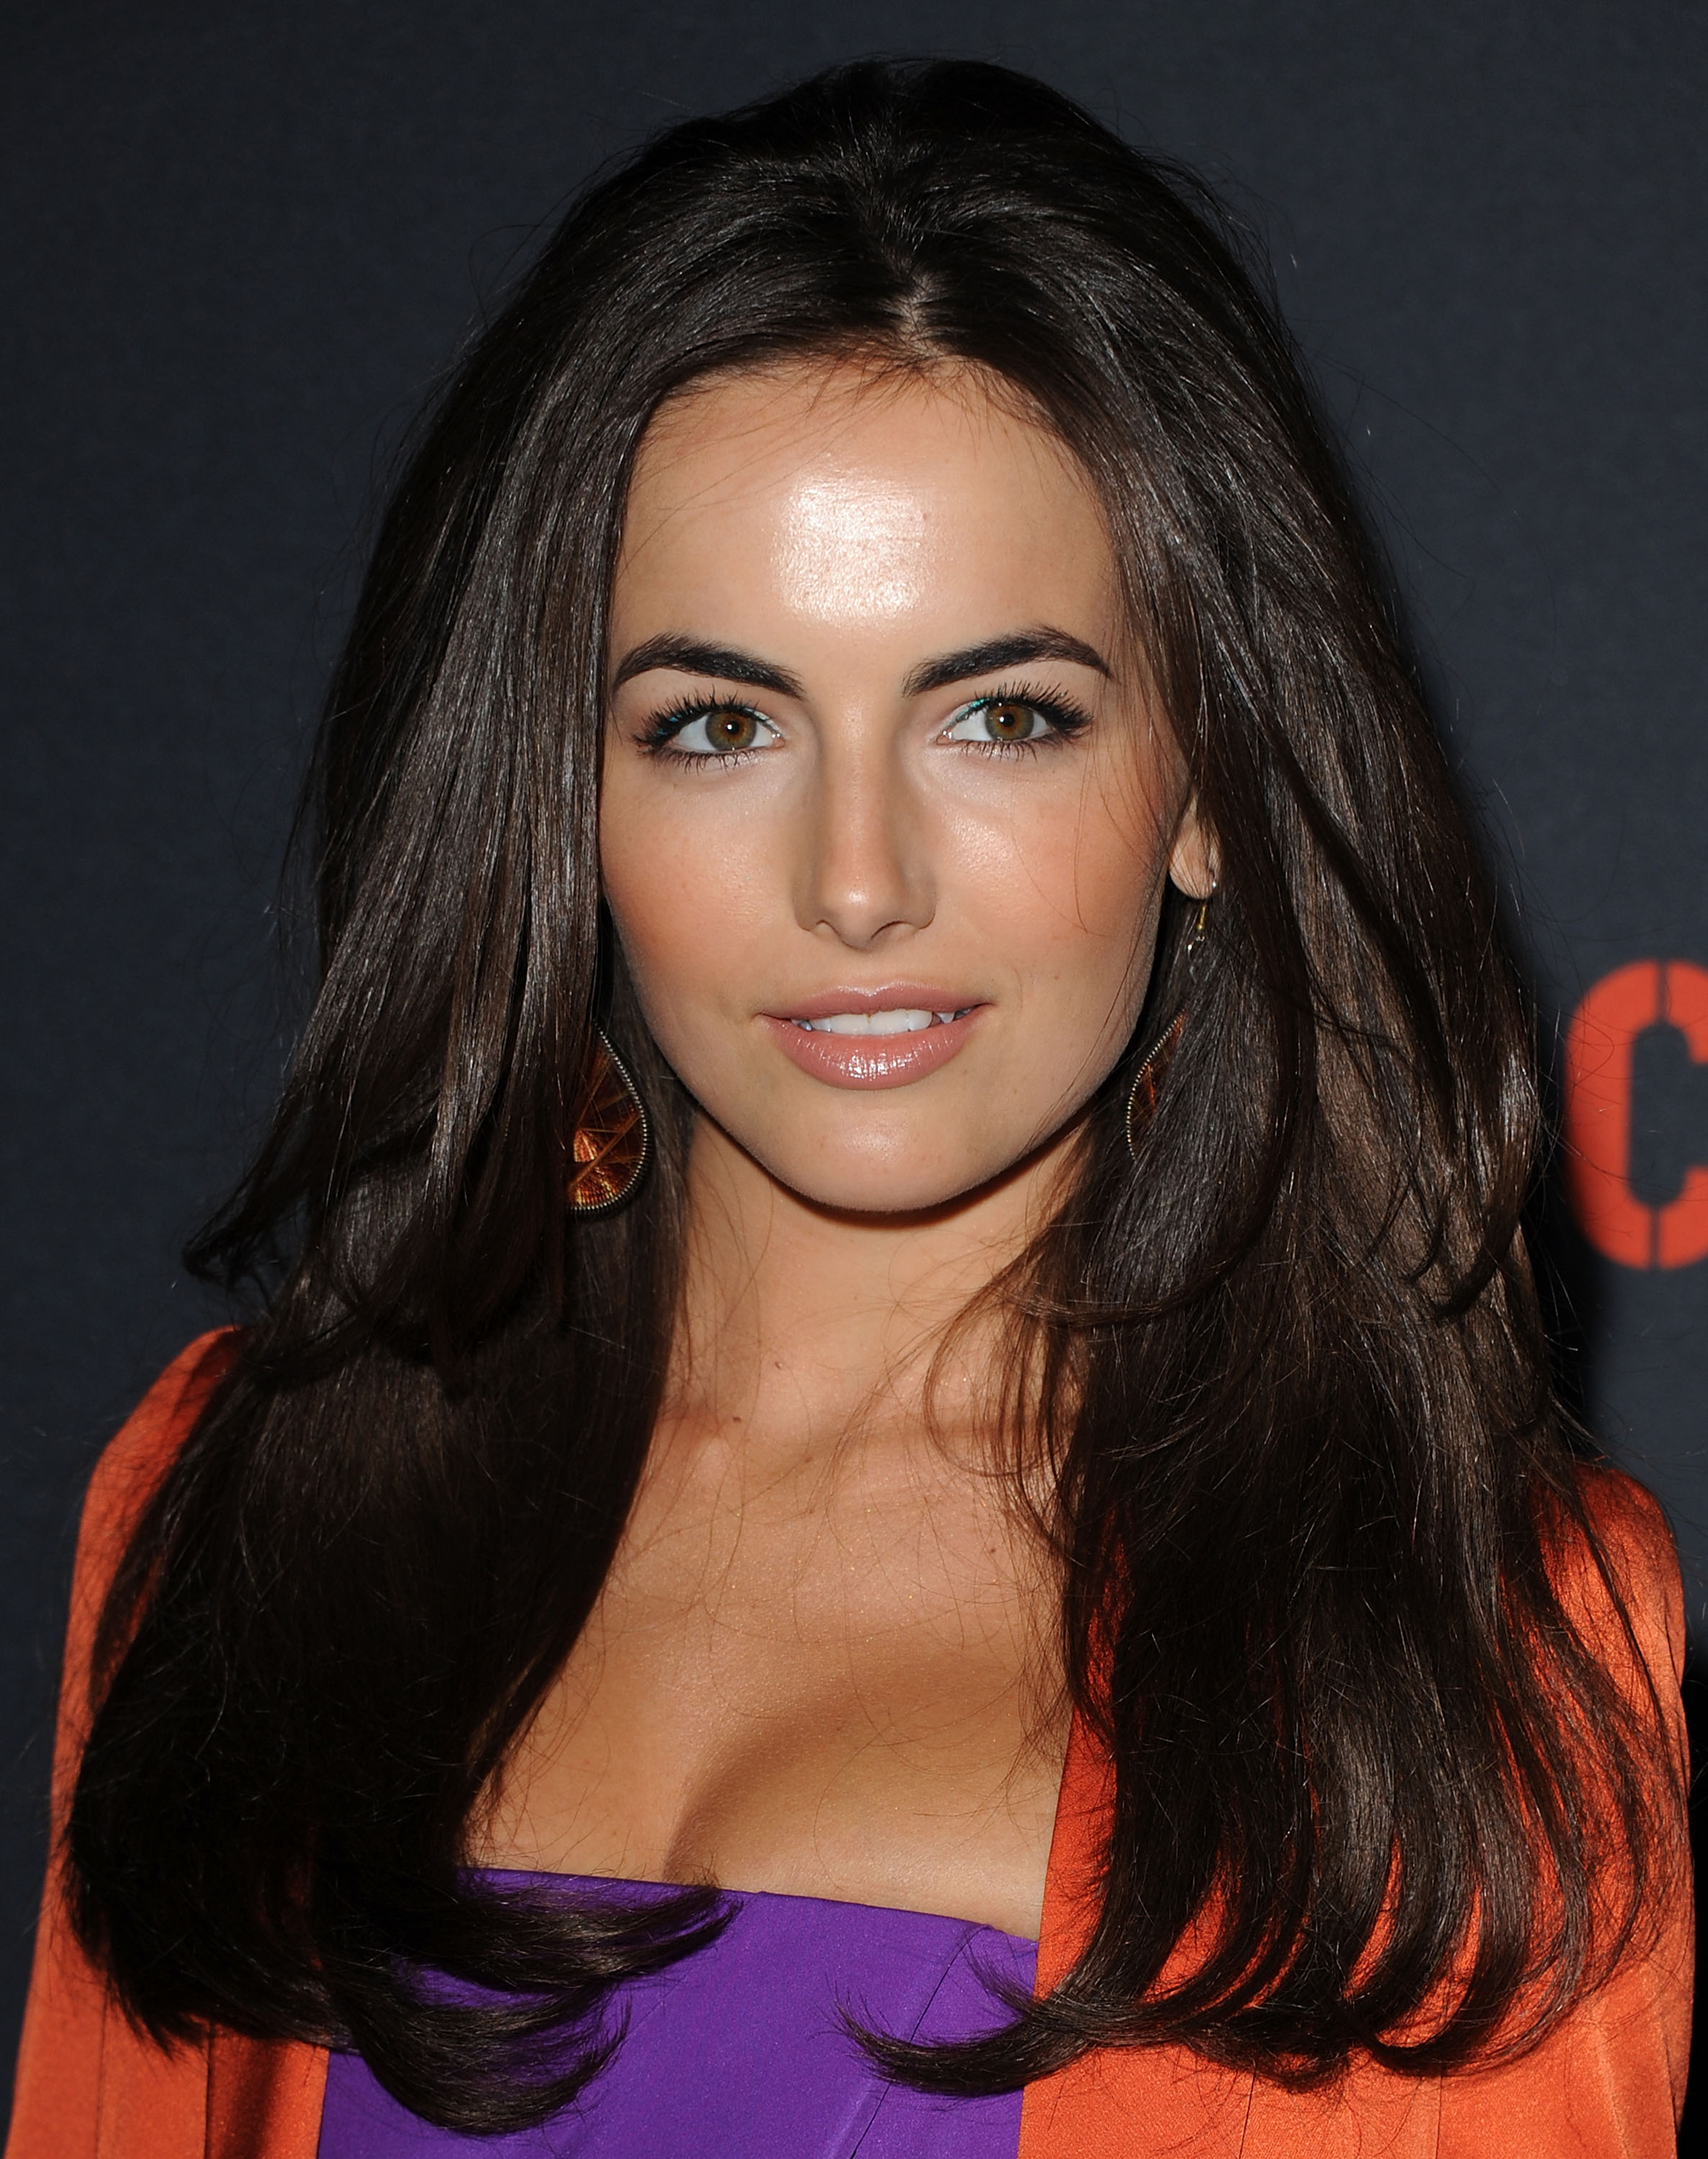 Camilla Belle arrives at the Gucci And RocNation Host Pre-Grammy Brunch At Soho House at Soho House on February 12, 2011 in West Hollywood